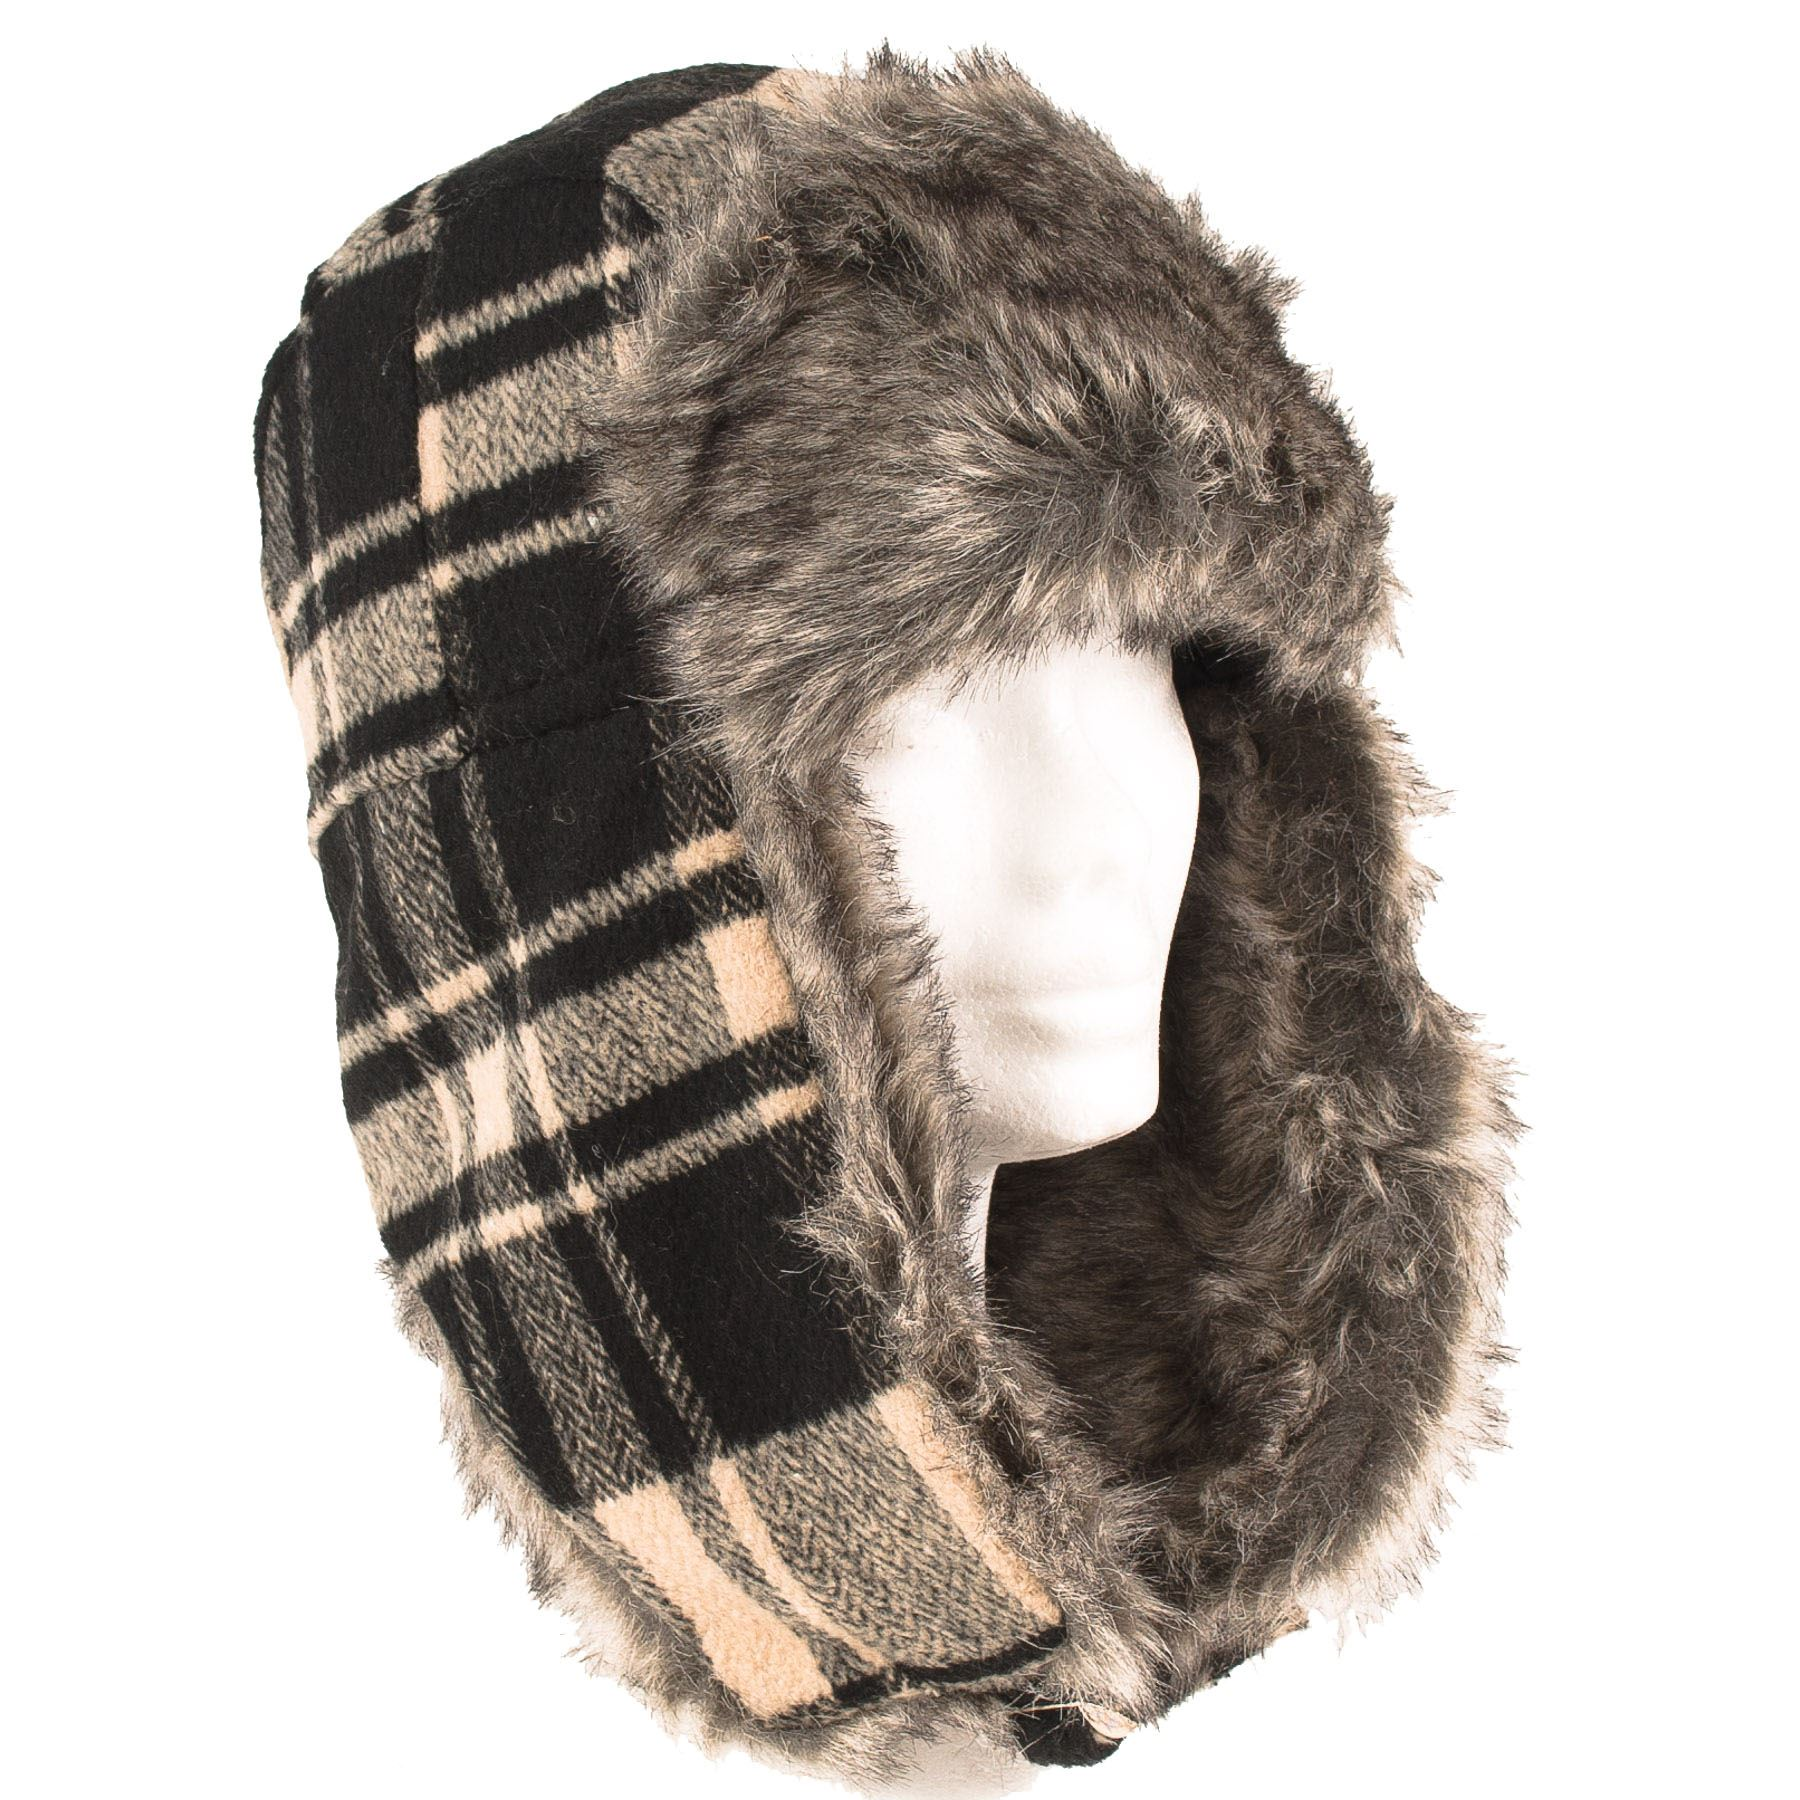 201fe48ec1562 Mens Ladies Trapper Aviator Tartan Checked Russian Ushanka Winter Hat Flaps  Black (s-m) 4670. About this product. Picture 1 of 2  Picture 2 of 2